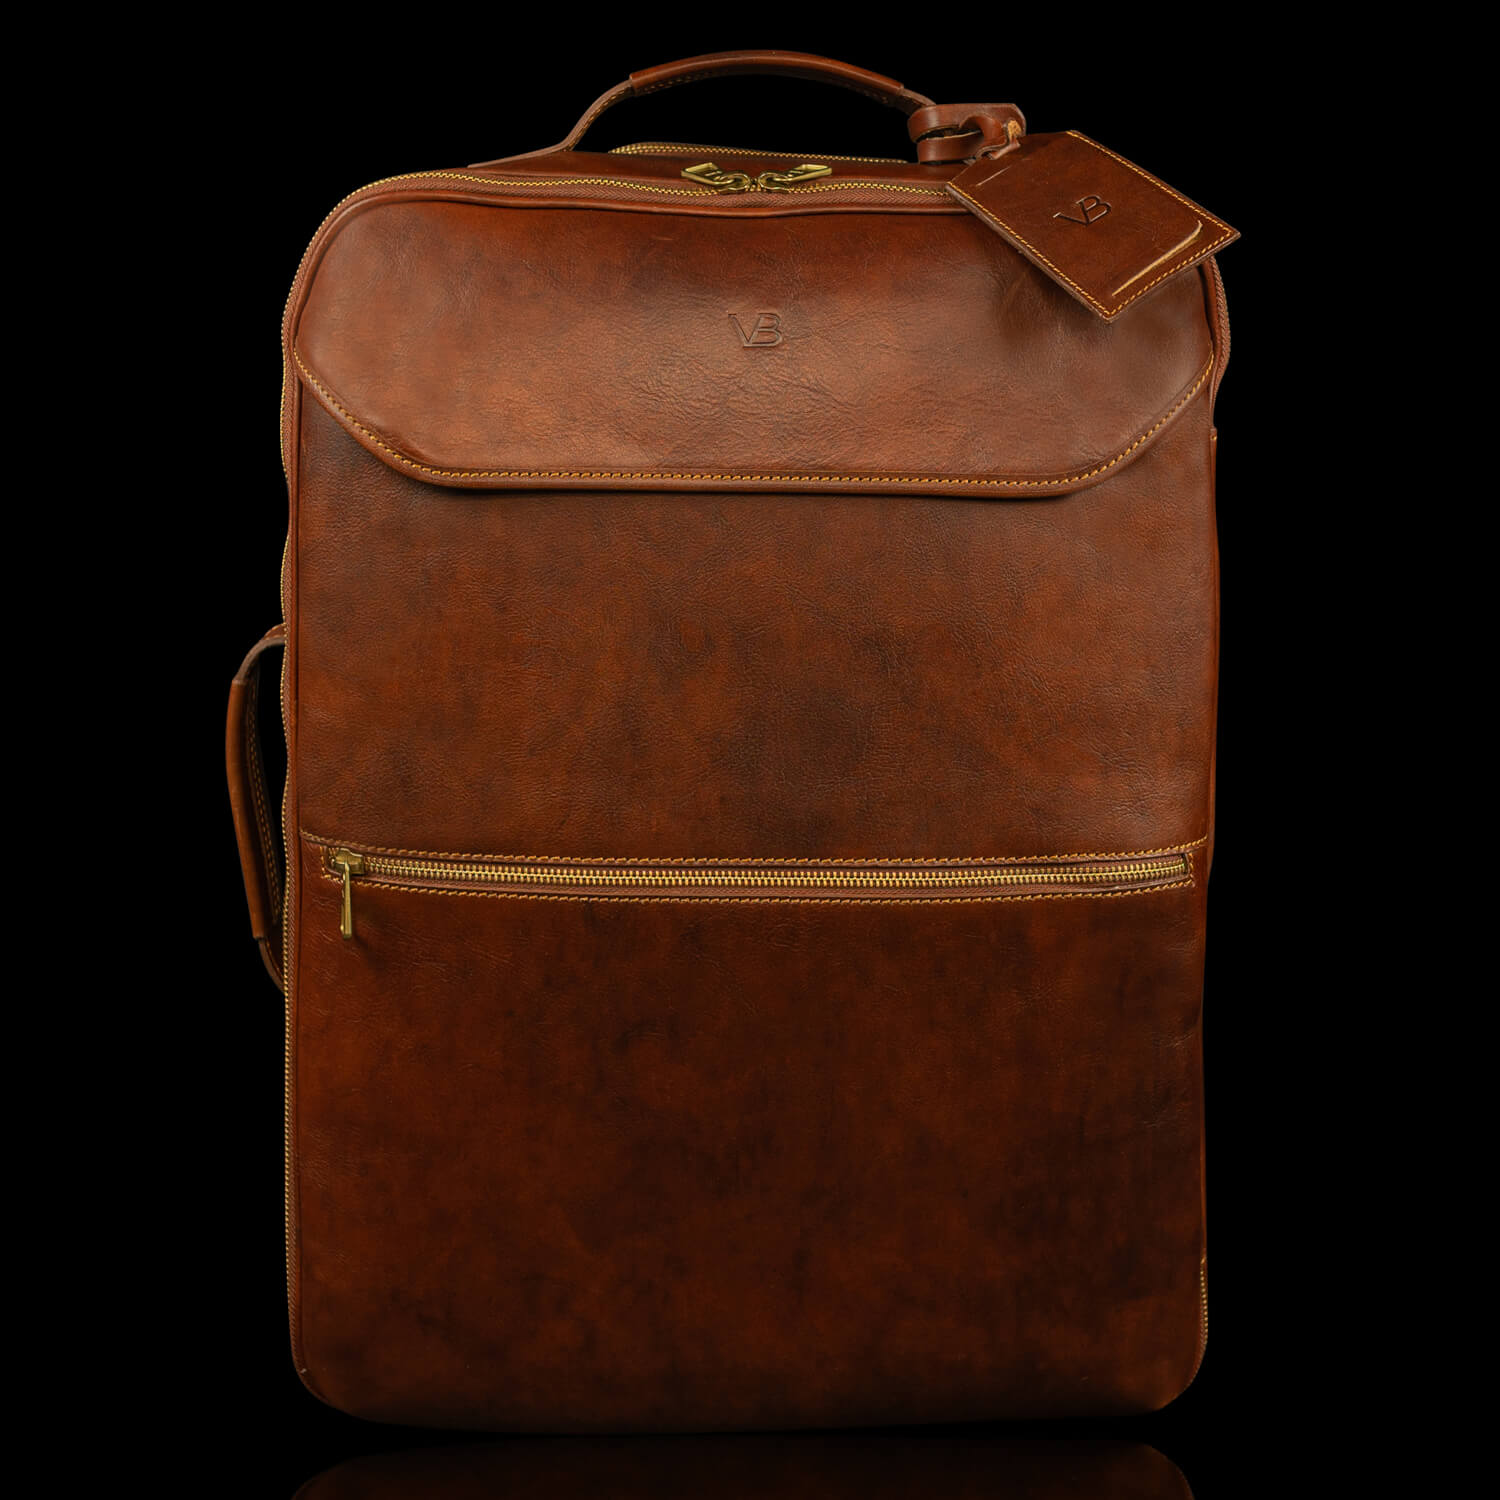 voyager leather carry on bag